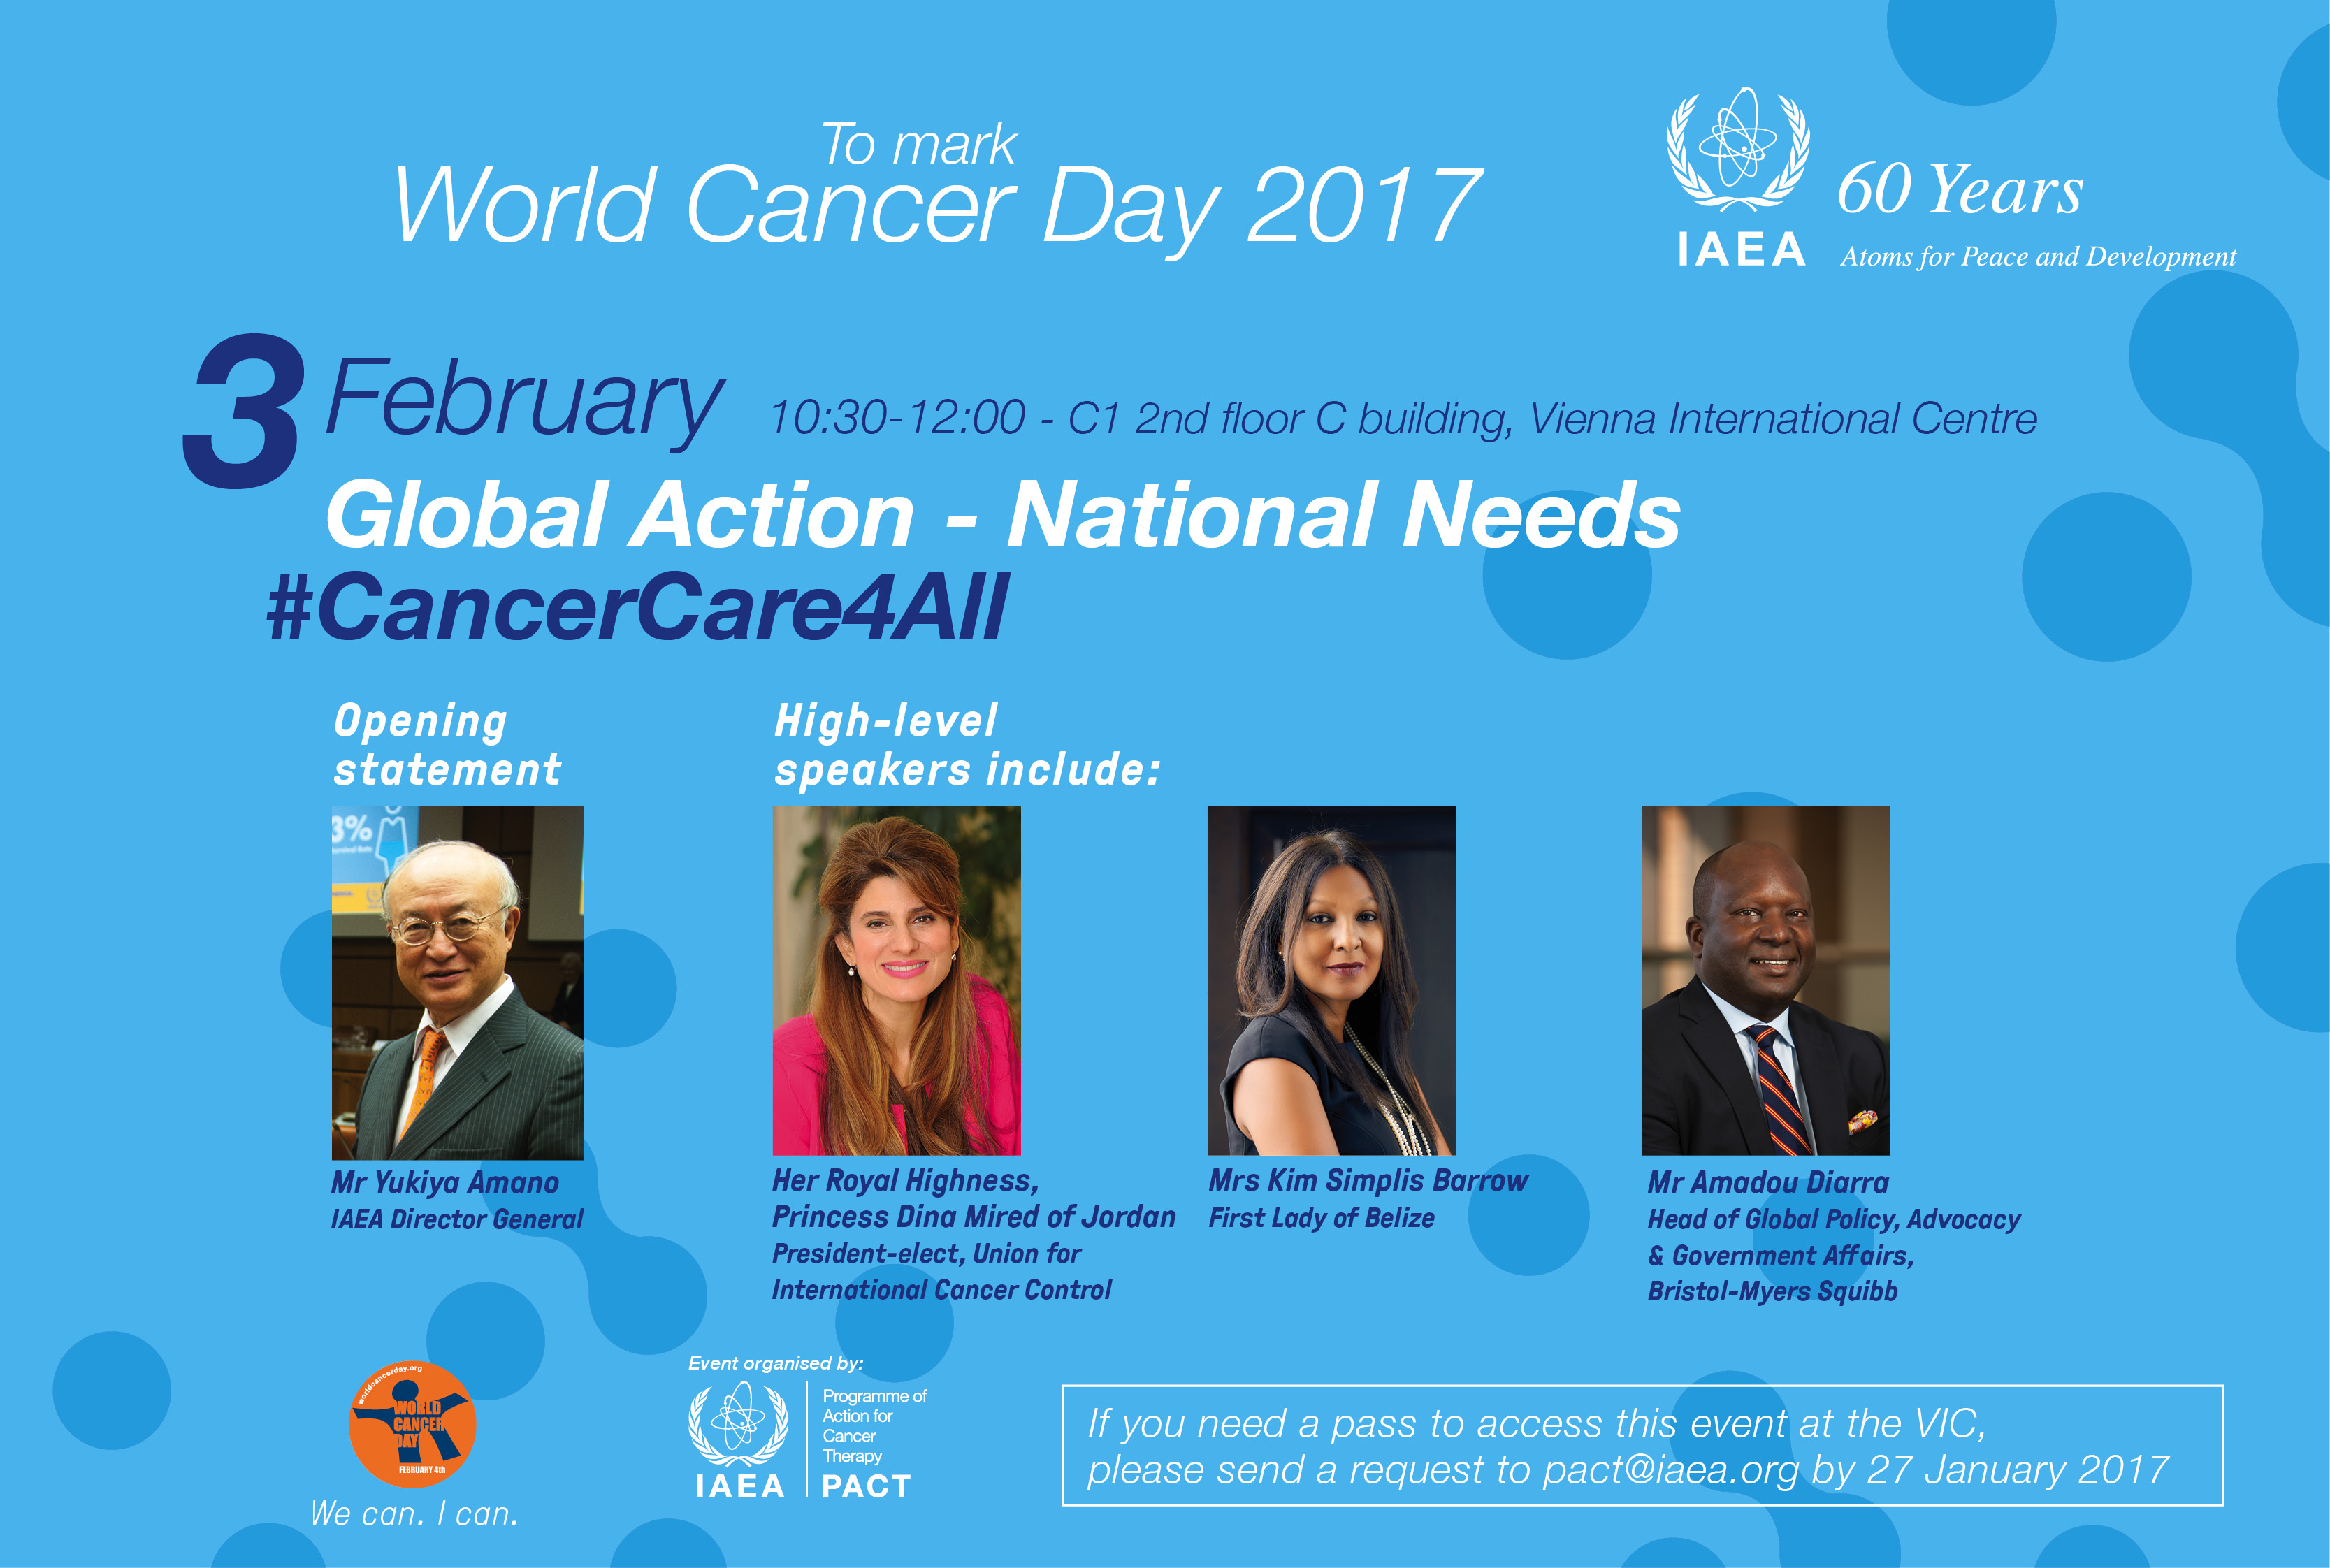 IAEA PACT Global Action - National Needs #CancerCare4All